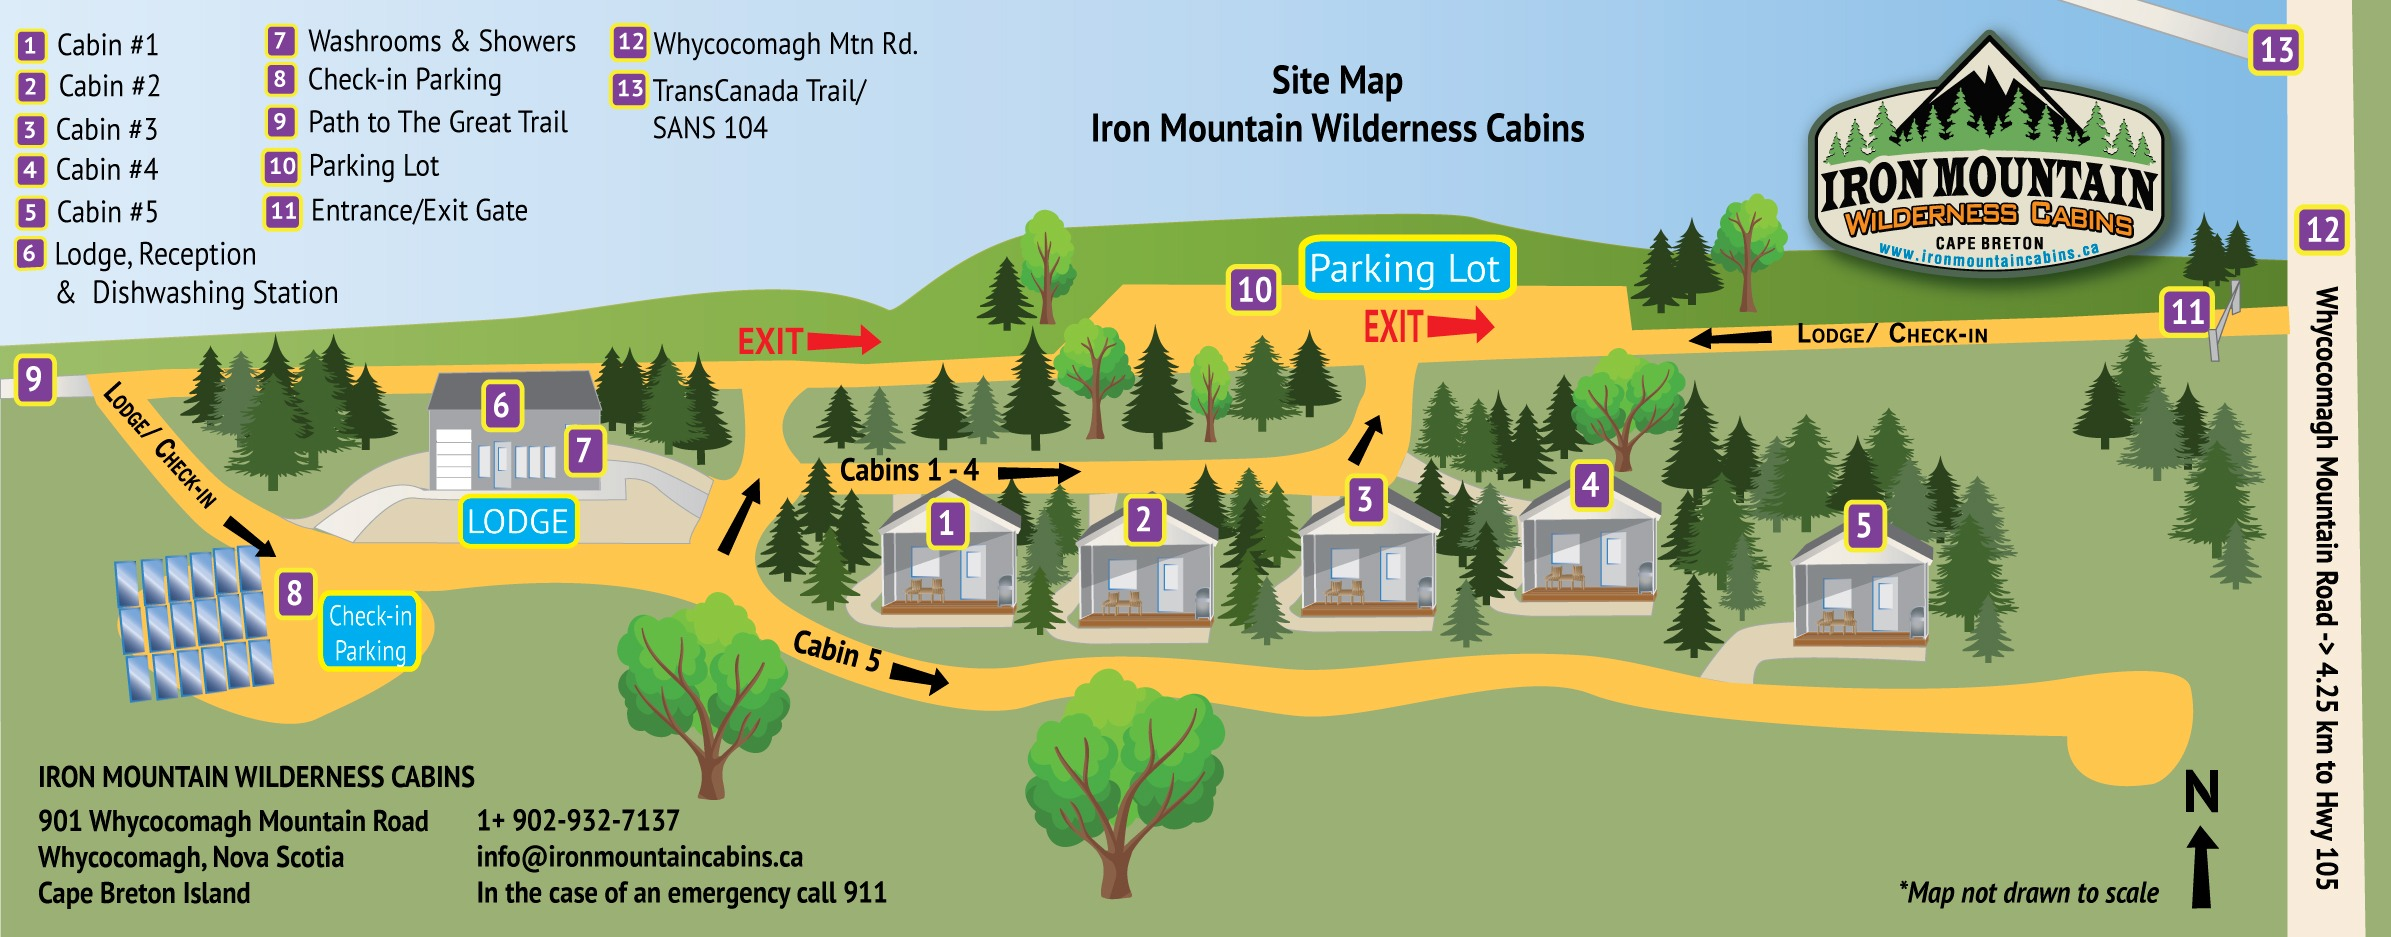 Illustrated map of Iron Mountain Wilderness Cabins campground and cabins